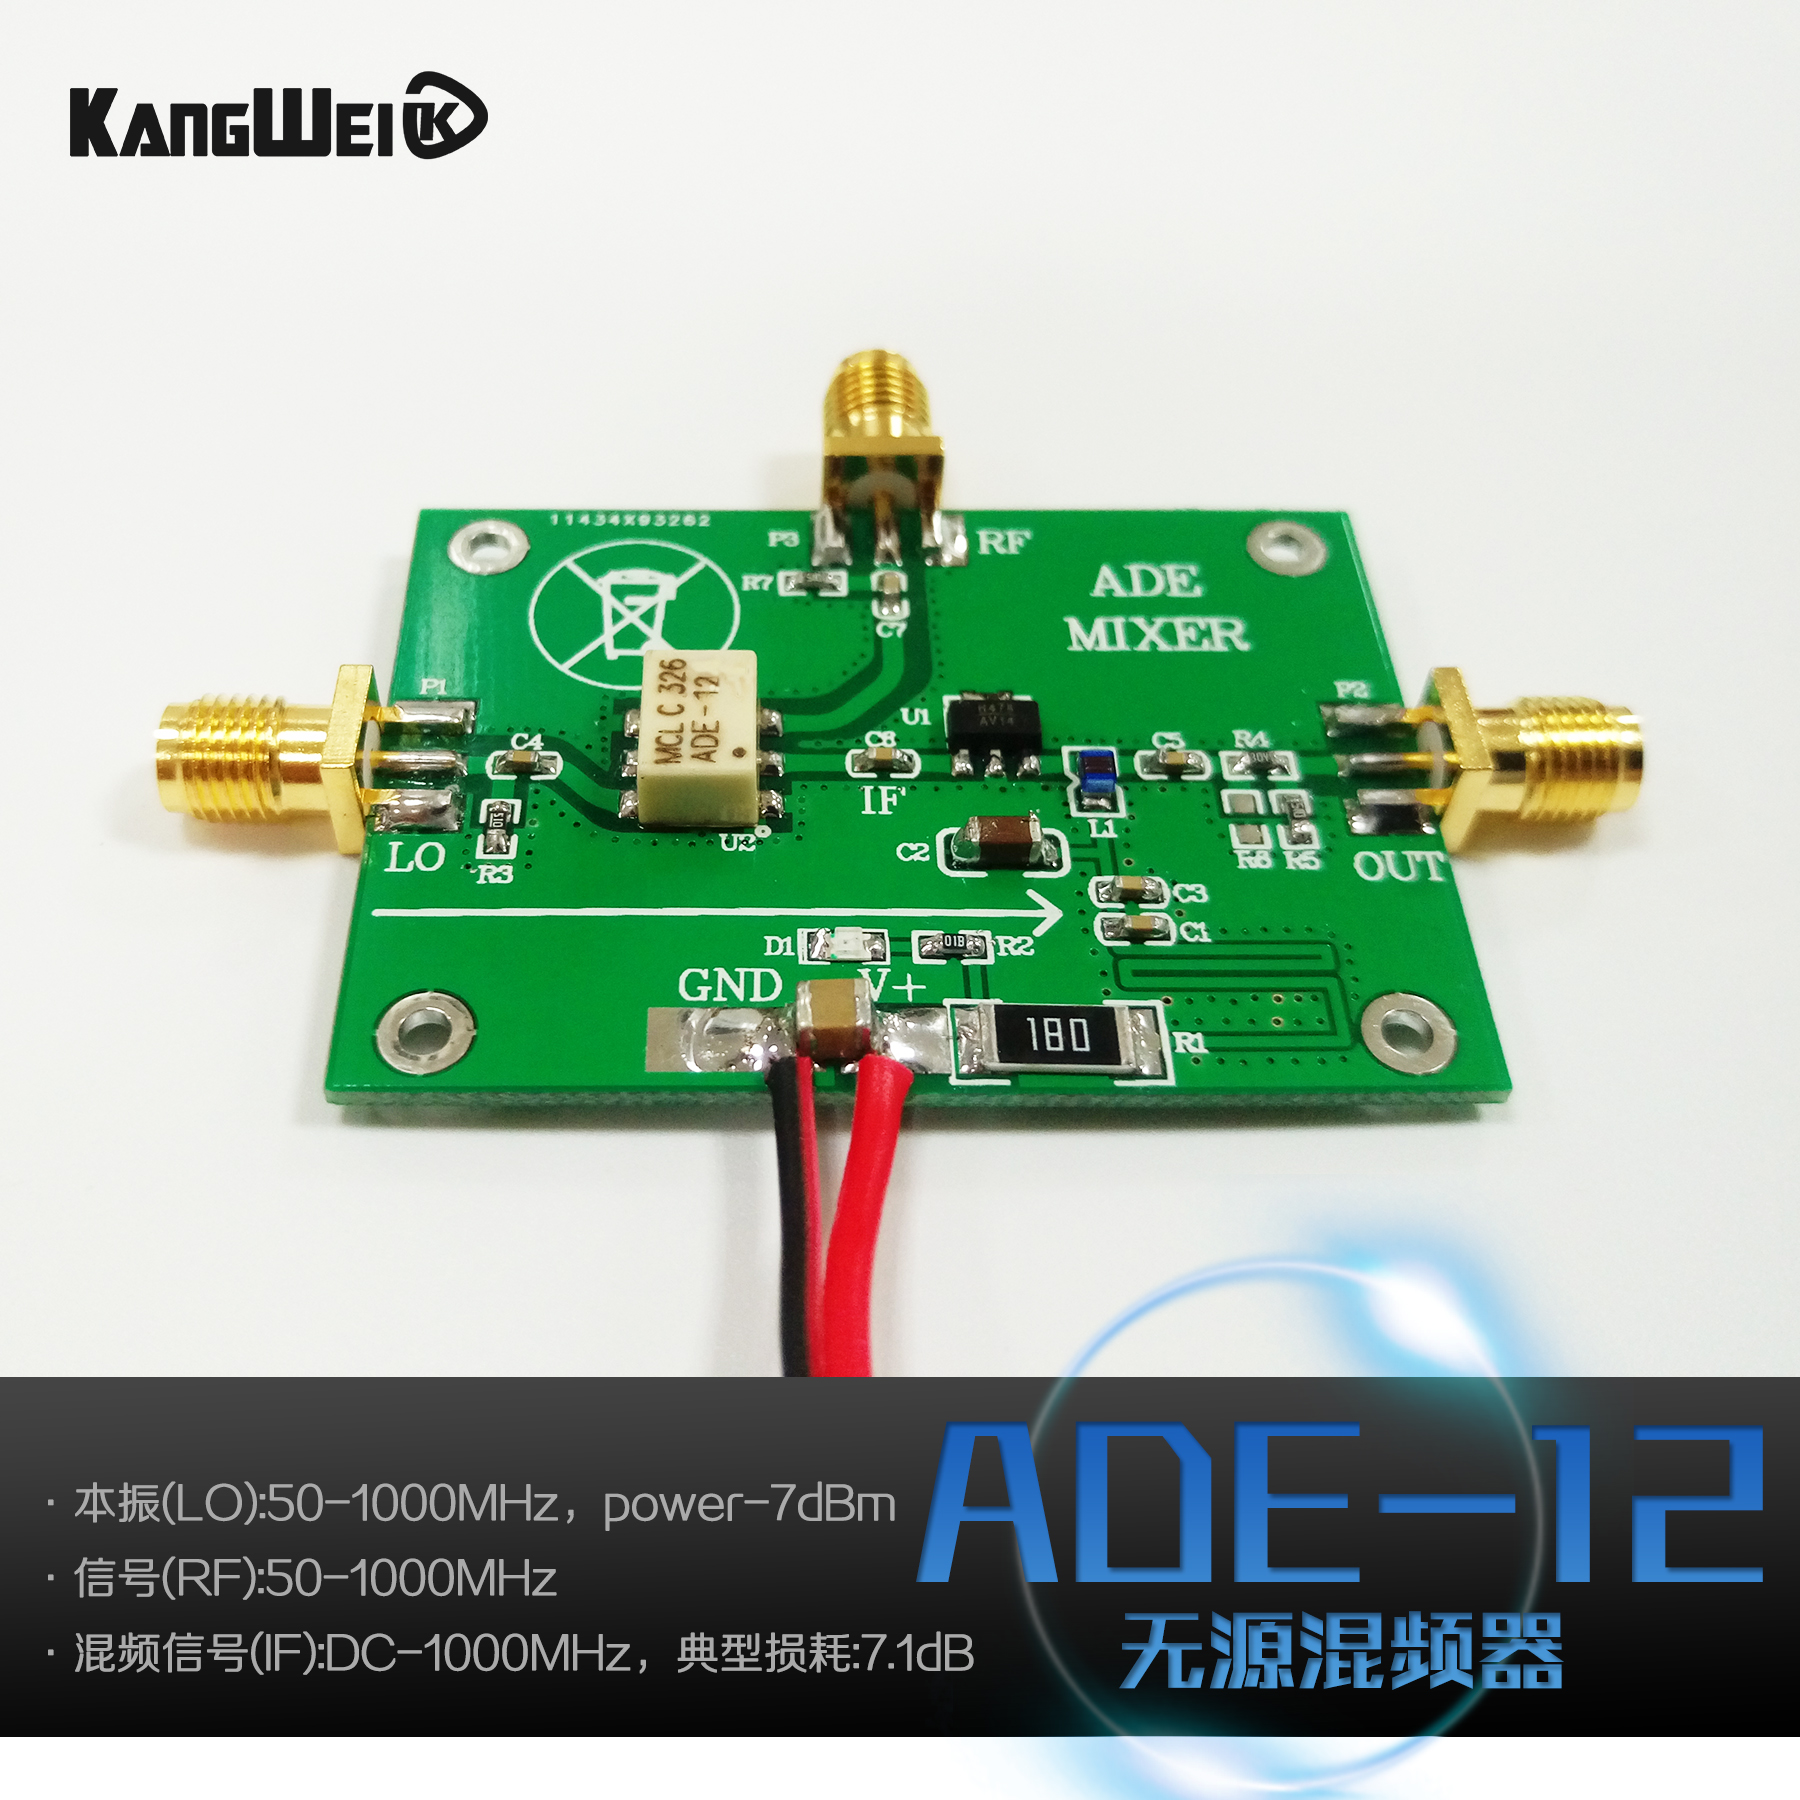 цена на High Frequency Mixer, ADE-12H Passive Mixer Module, Conway Technology, 50MHz-1000MHz Mixer